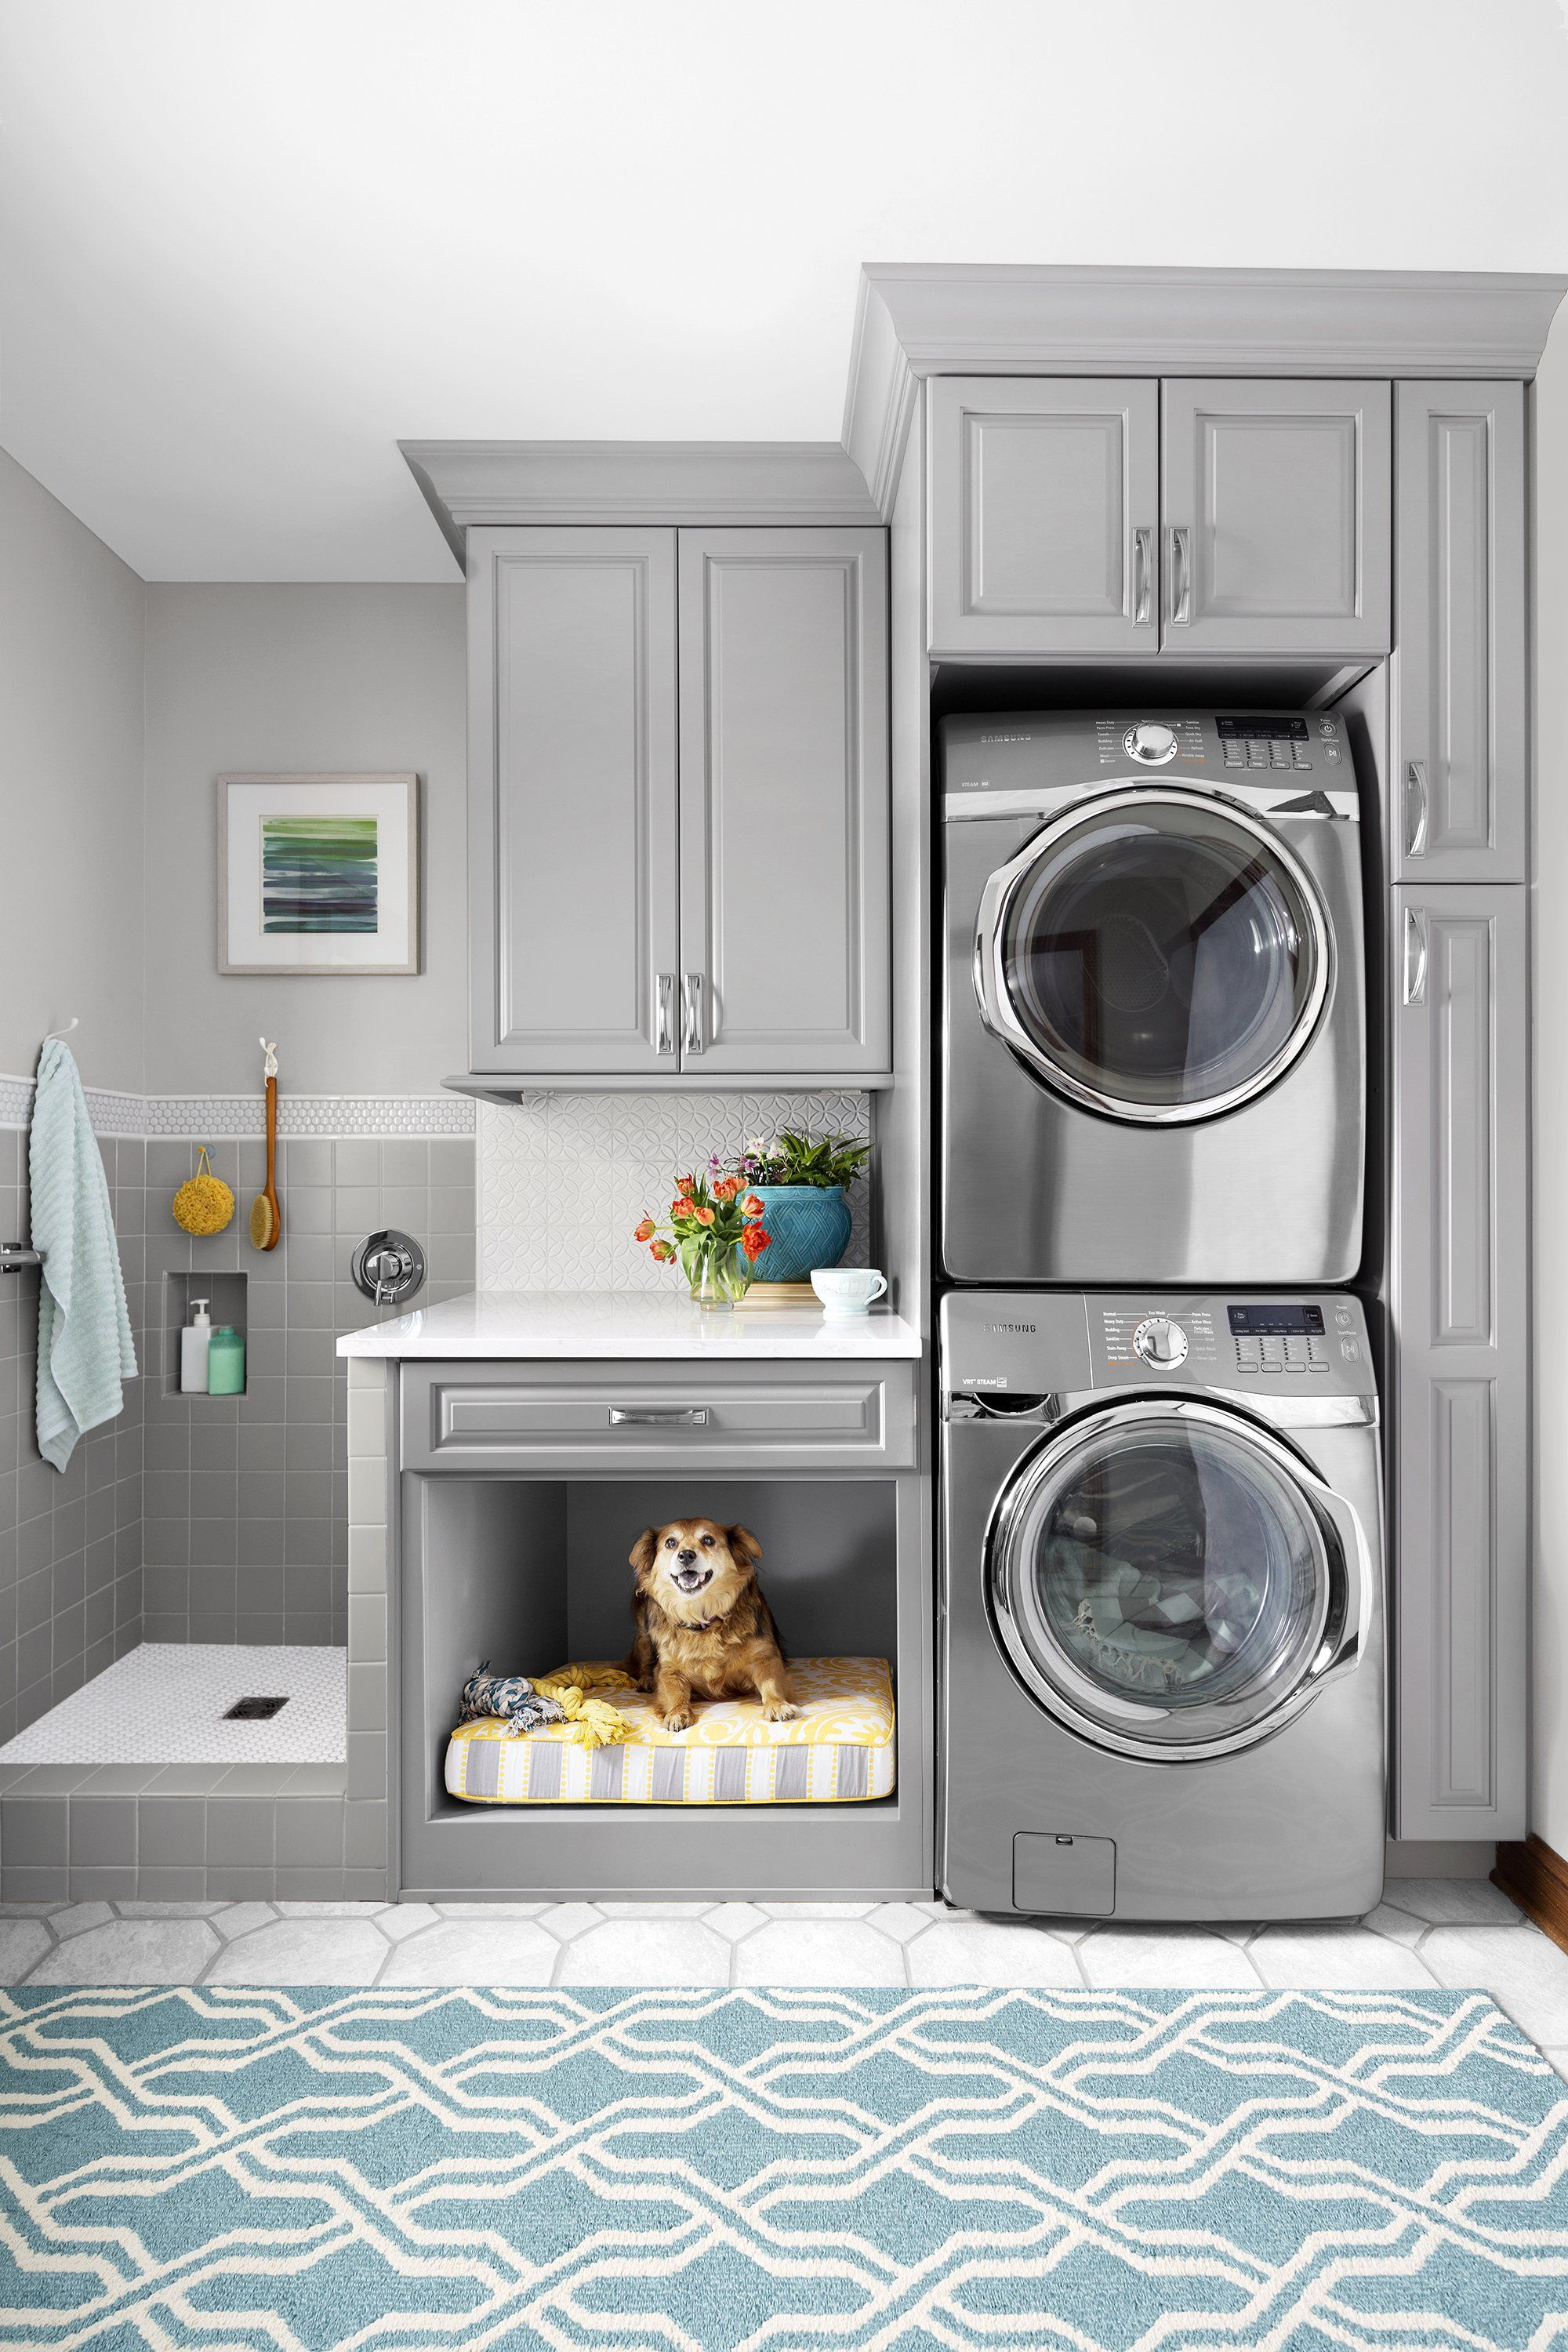 Laundry room for vertical spaces spaces easy and laundry a simple rearrangement of task areas takes advantage of vertical space to make cleanup easier for both two and four legged family members solutioingenieria Image collections